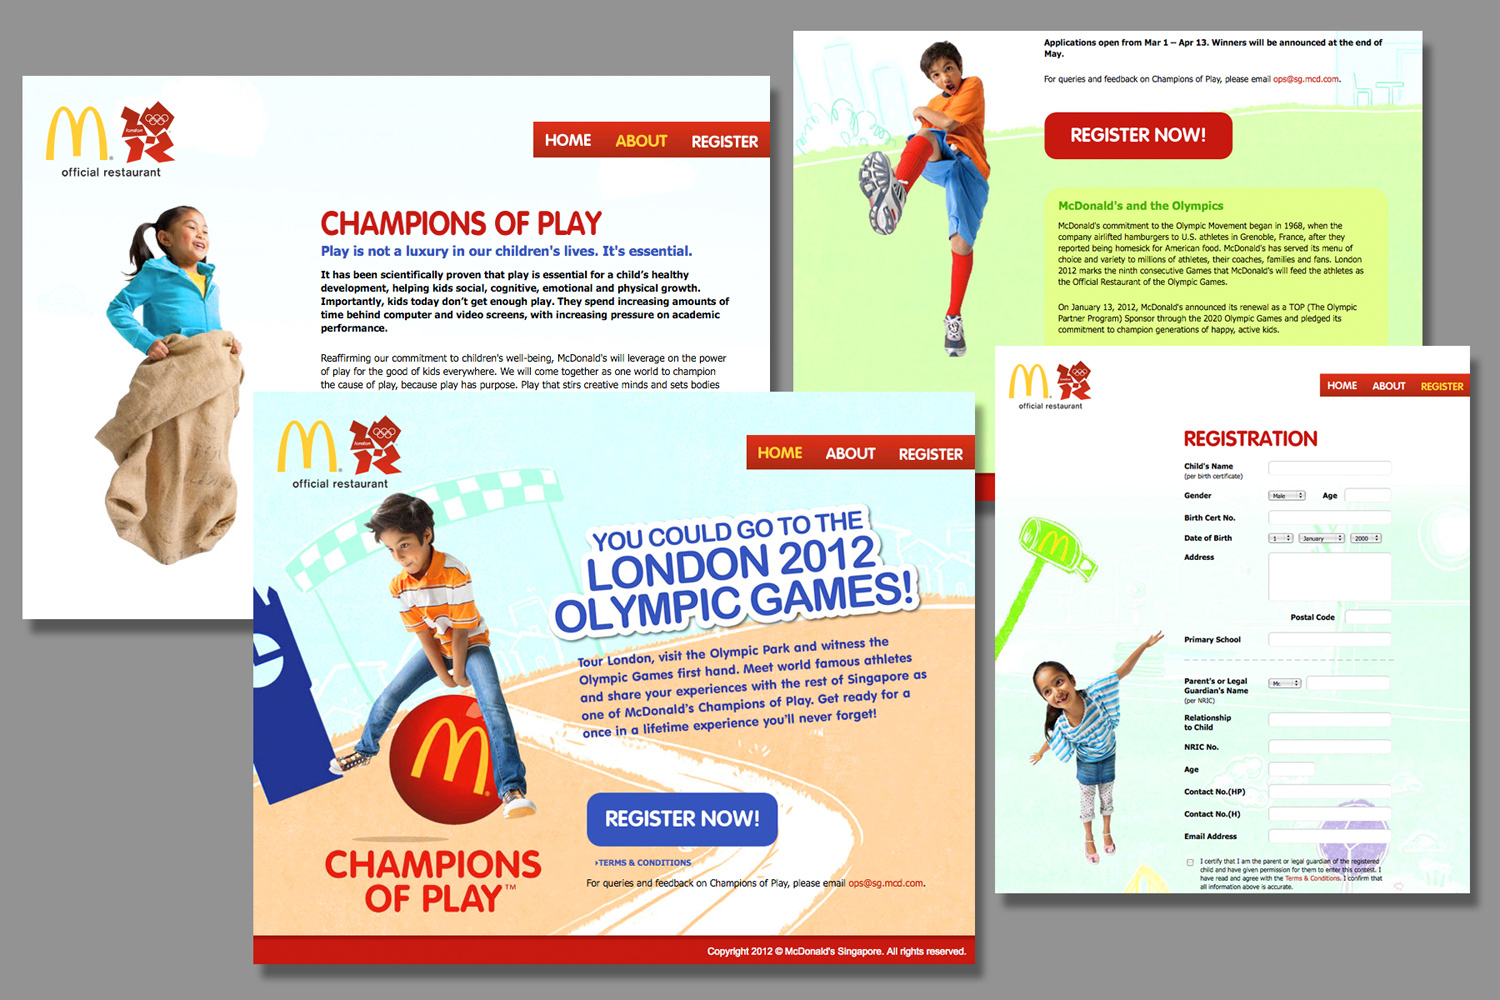 Champions of Play website applications.